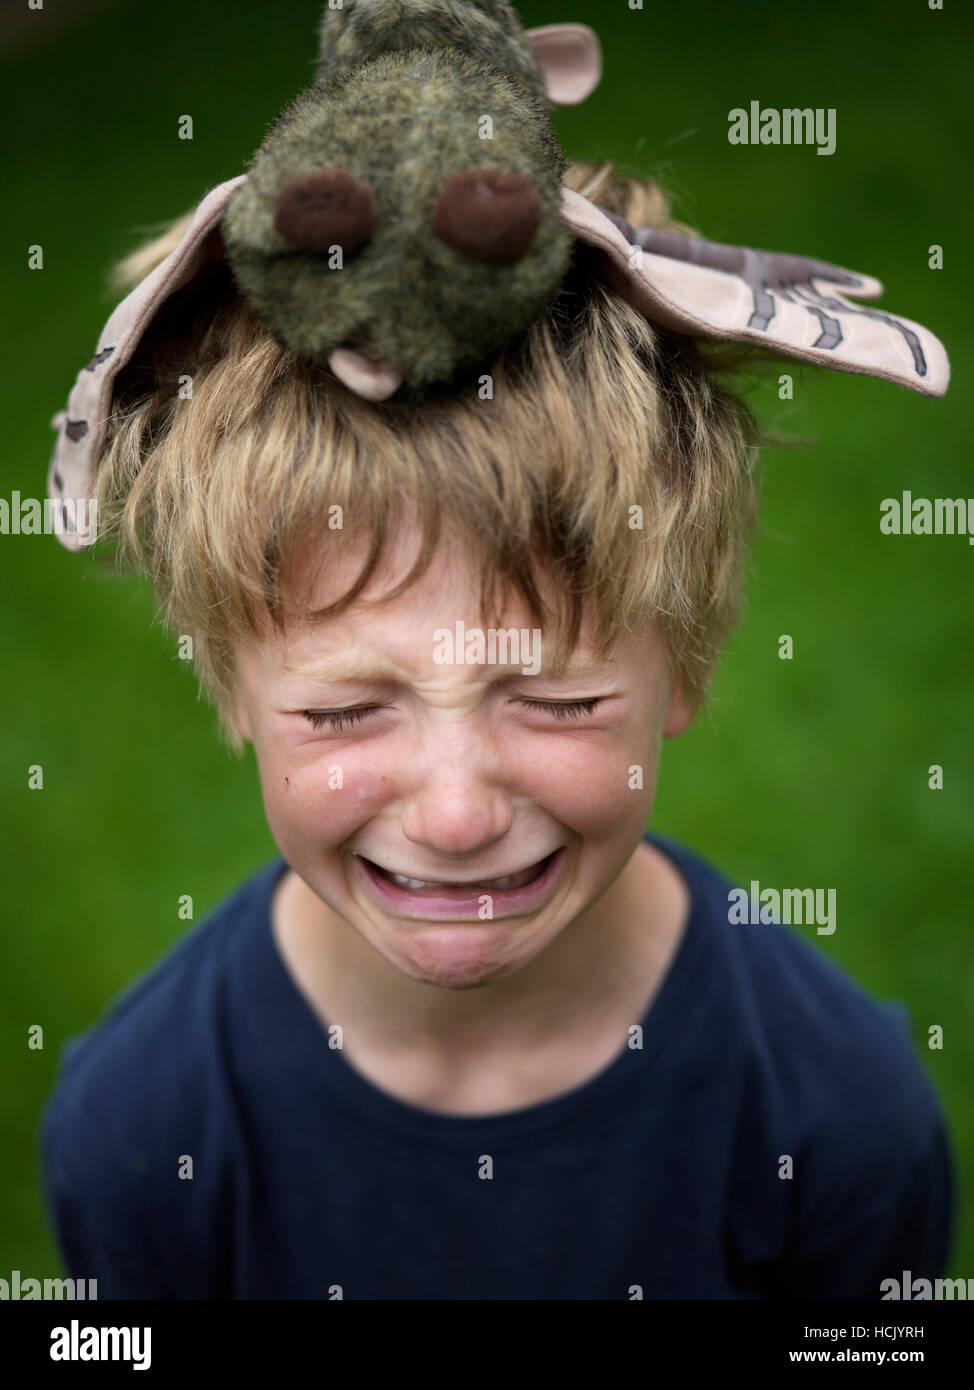 Young boy cries, with stuffed animal on his head. - Stock Image